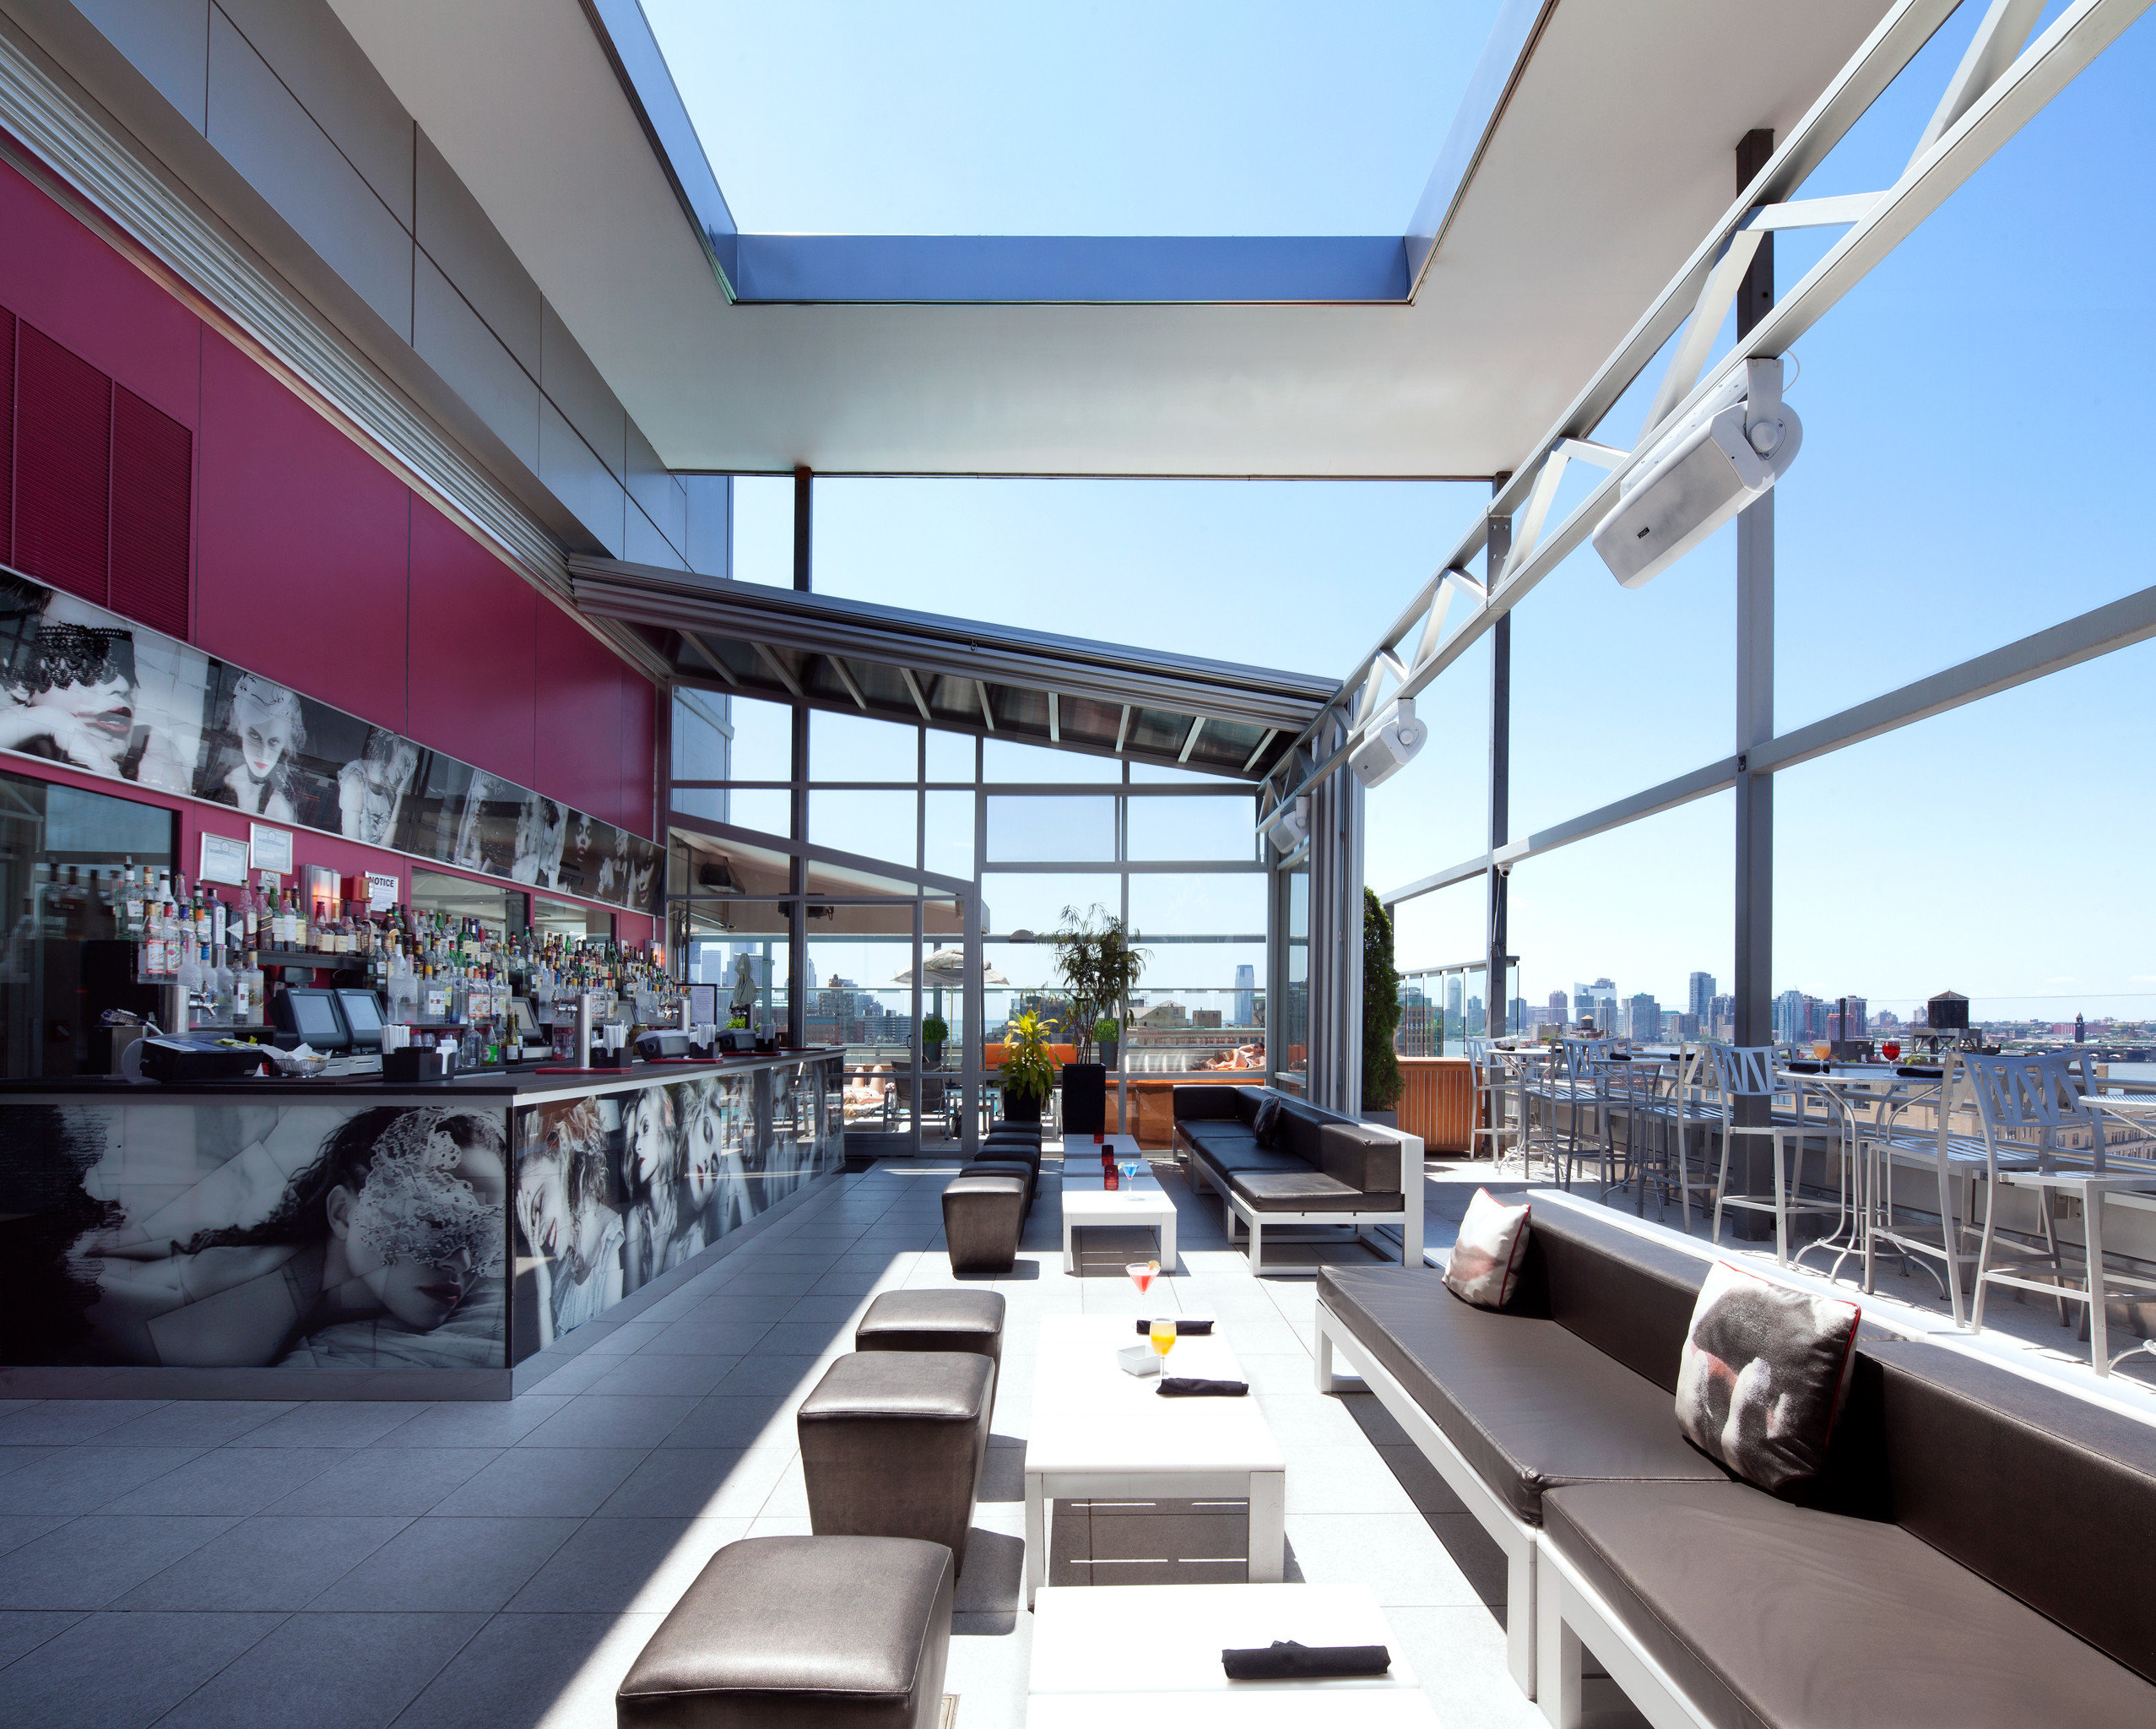 Bar Buildings City Dining Drink Eat Lounge Modern Rooftop Scenic views structure sport venue infrastructure headquarters public transport